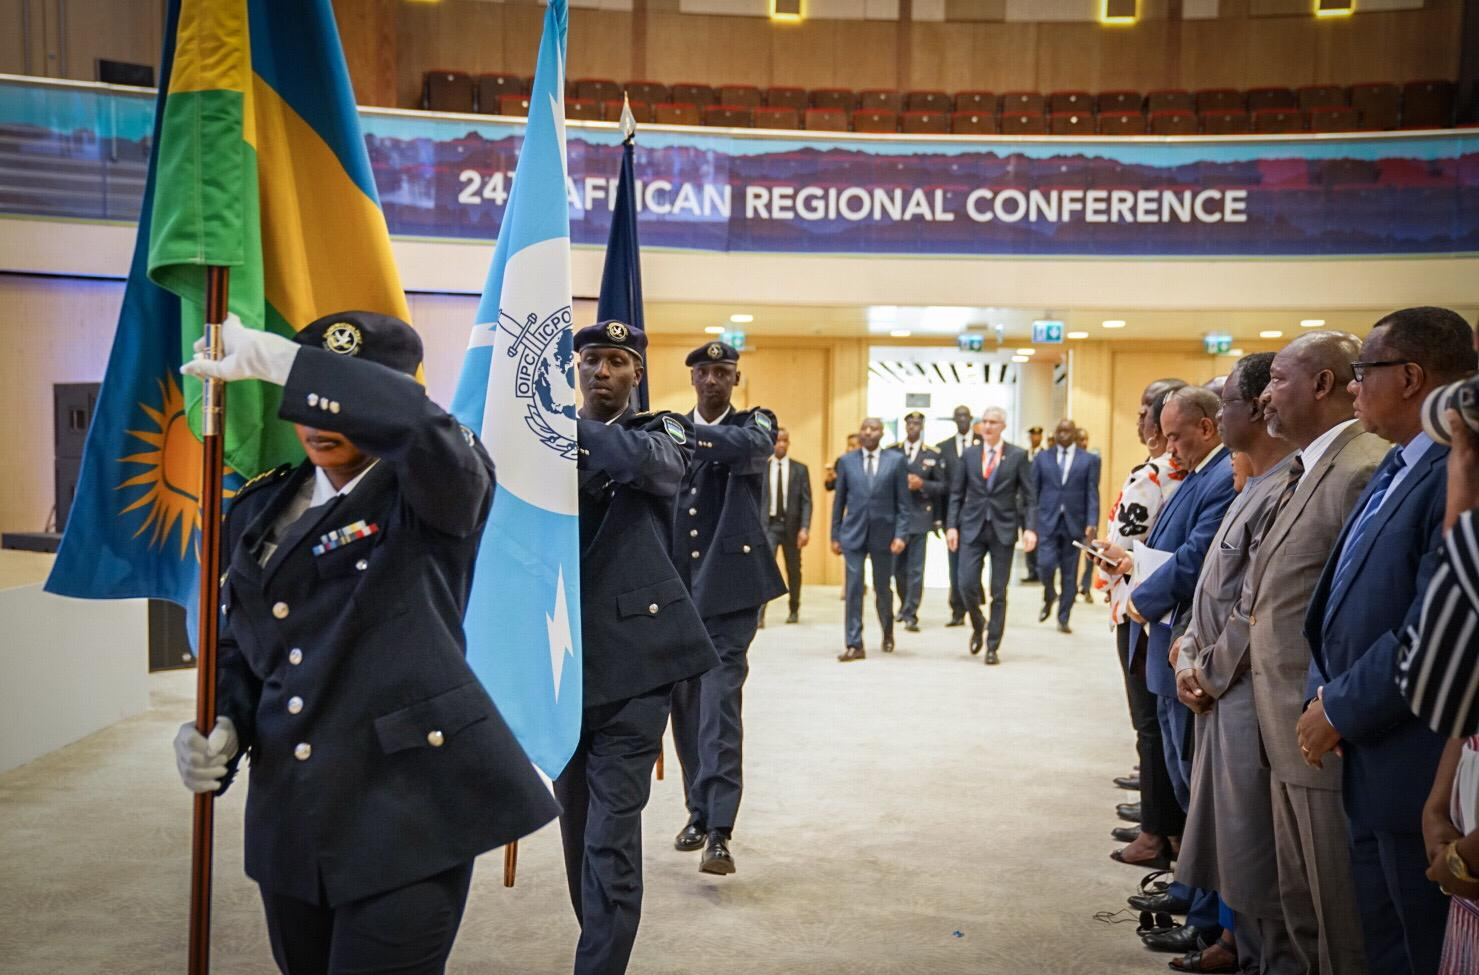 The Rwanda National Police are hosting the INTERPOL African Regional Conference in Kigali.